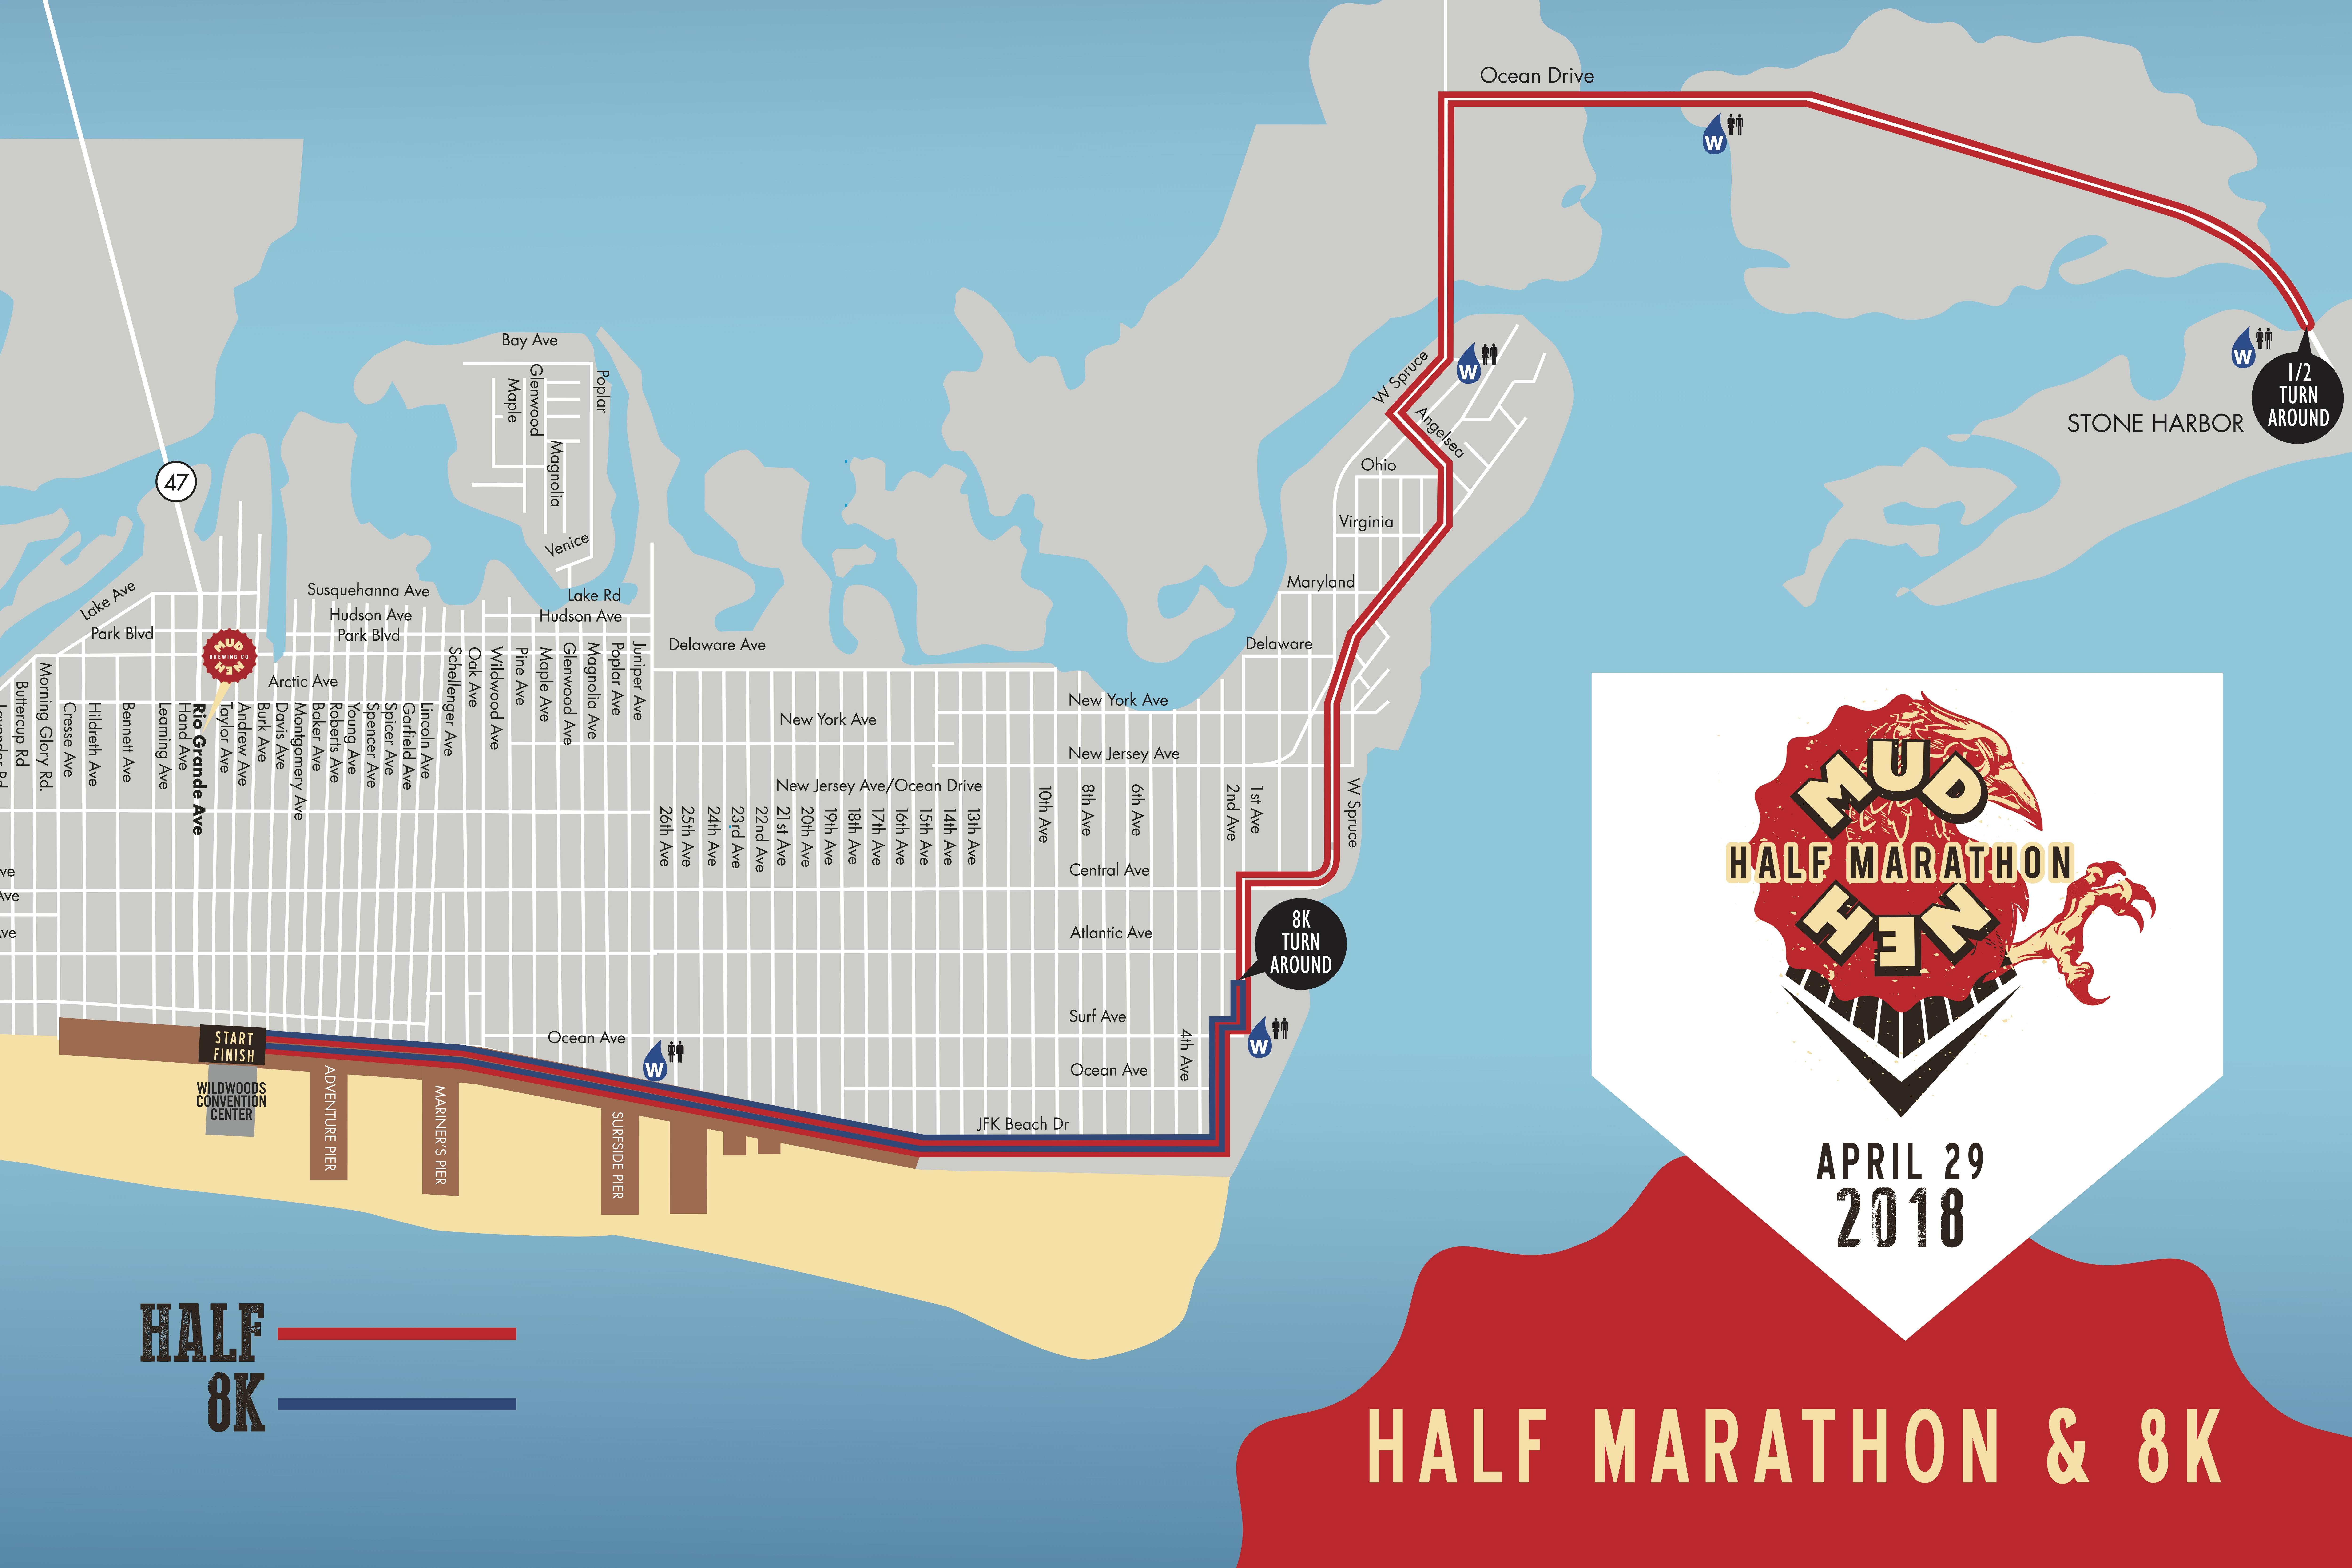 8K and Half Marathon Course